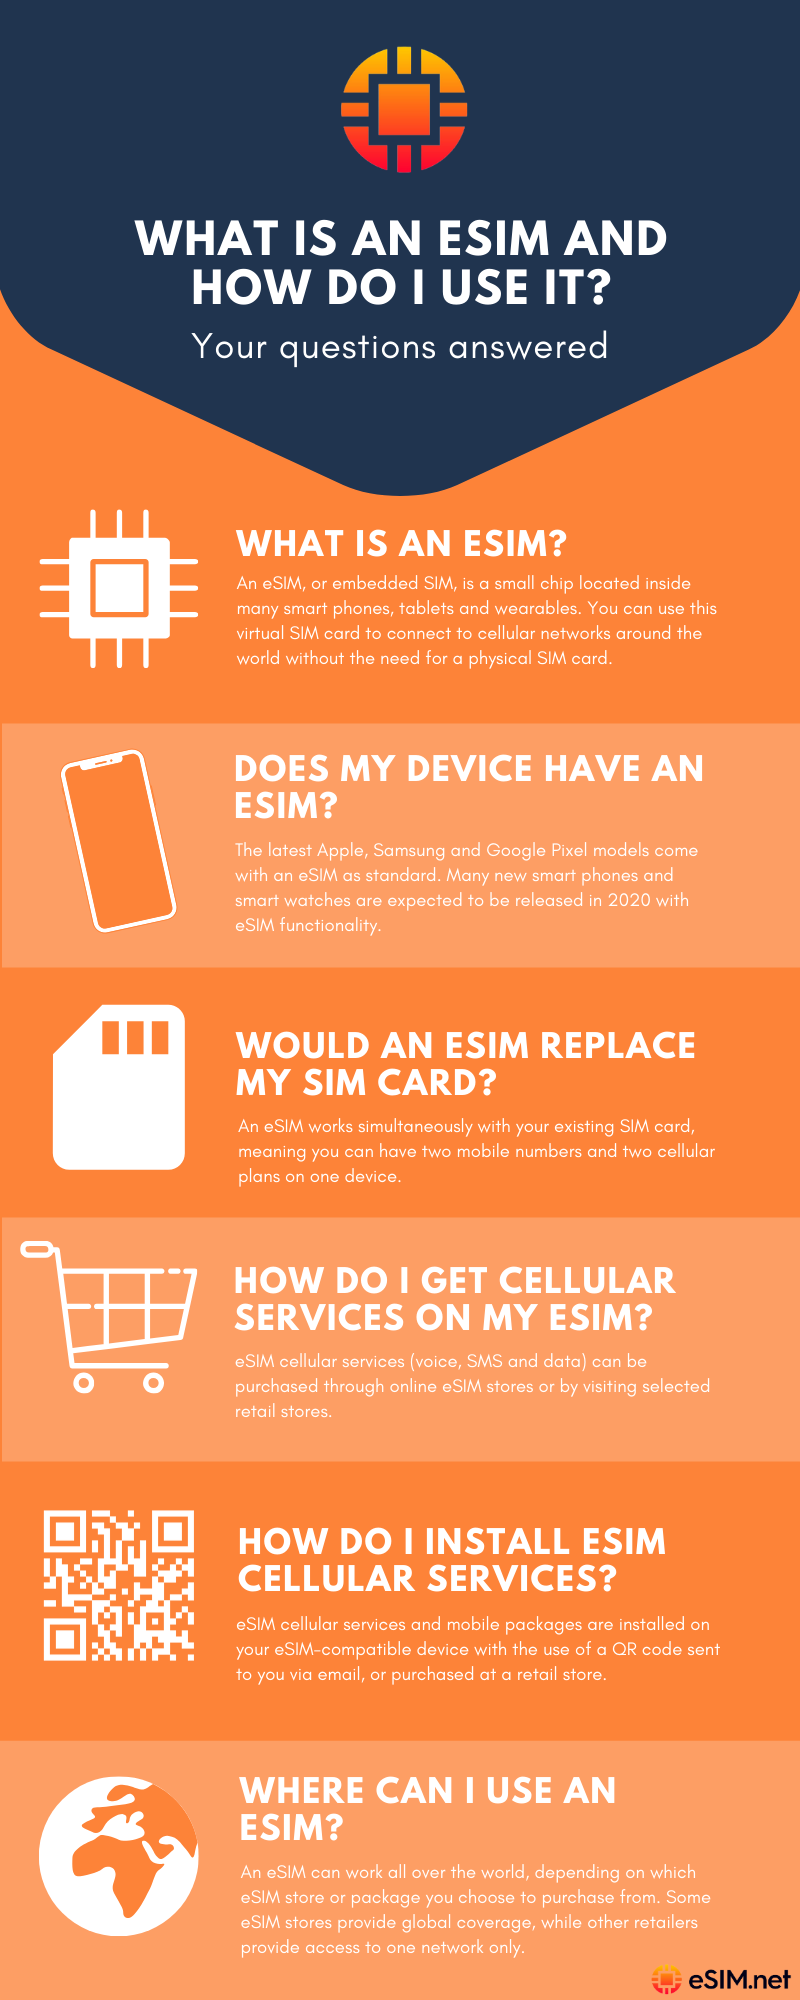 What is an eSIM and how does it work? - Infographic